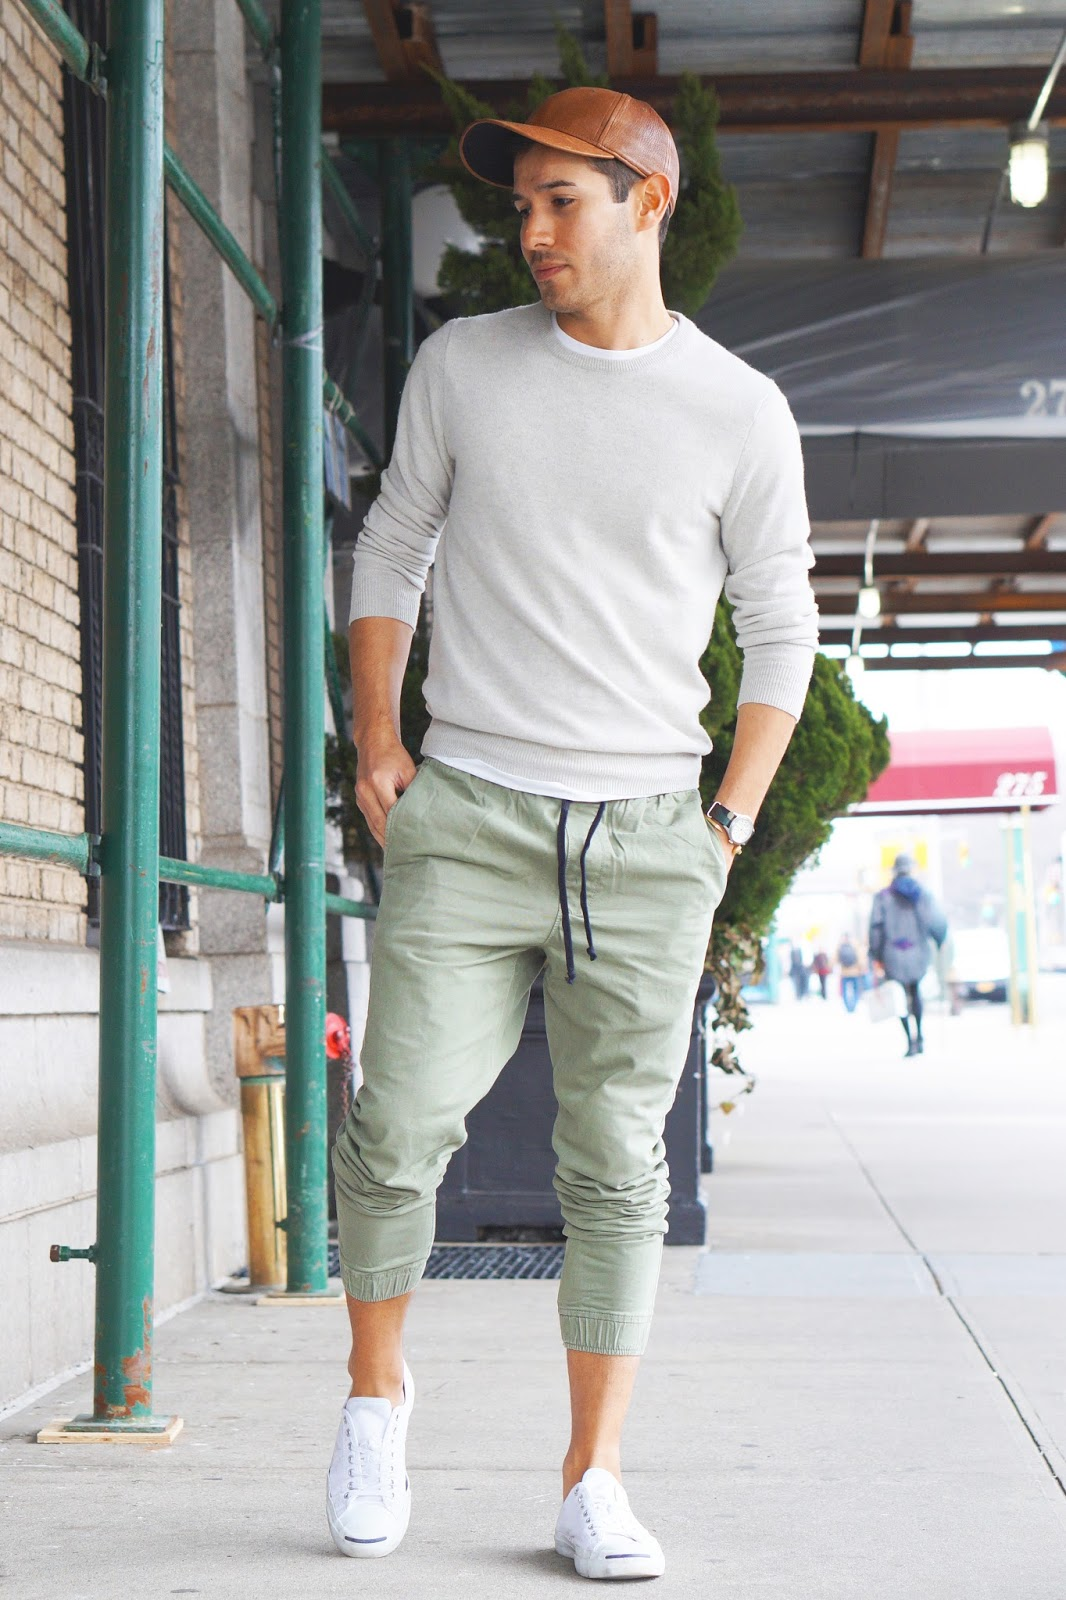 Jogger Wear - TREND STYLED u2022 Style Grooming Design and Travel Lifestyle Blog by Saul Rasco